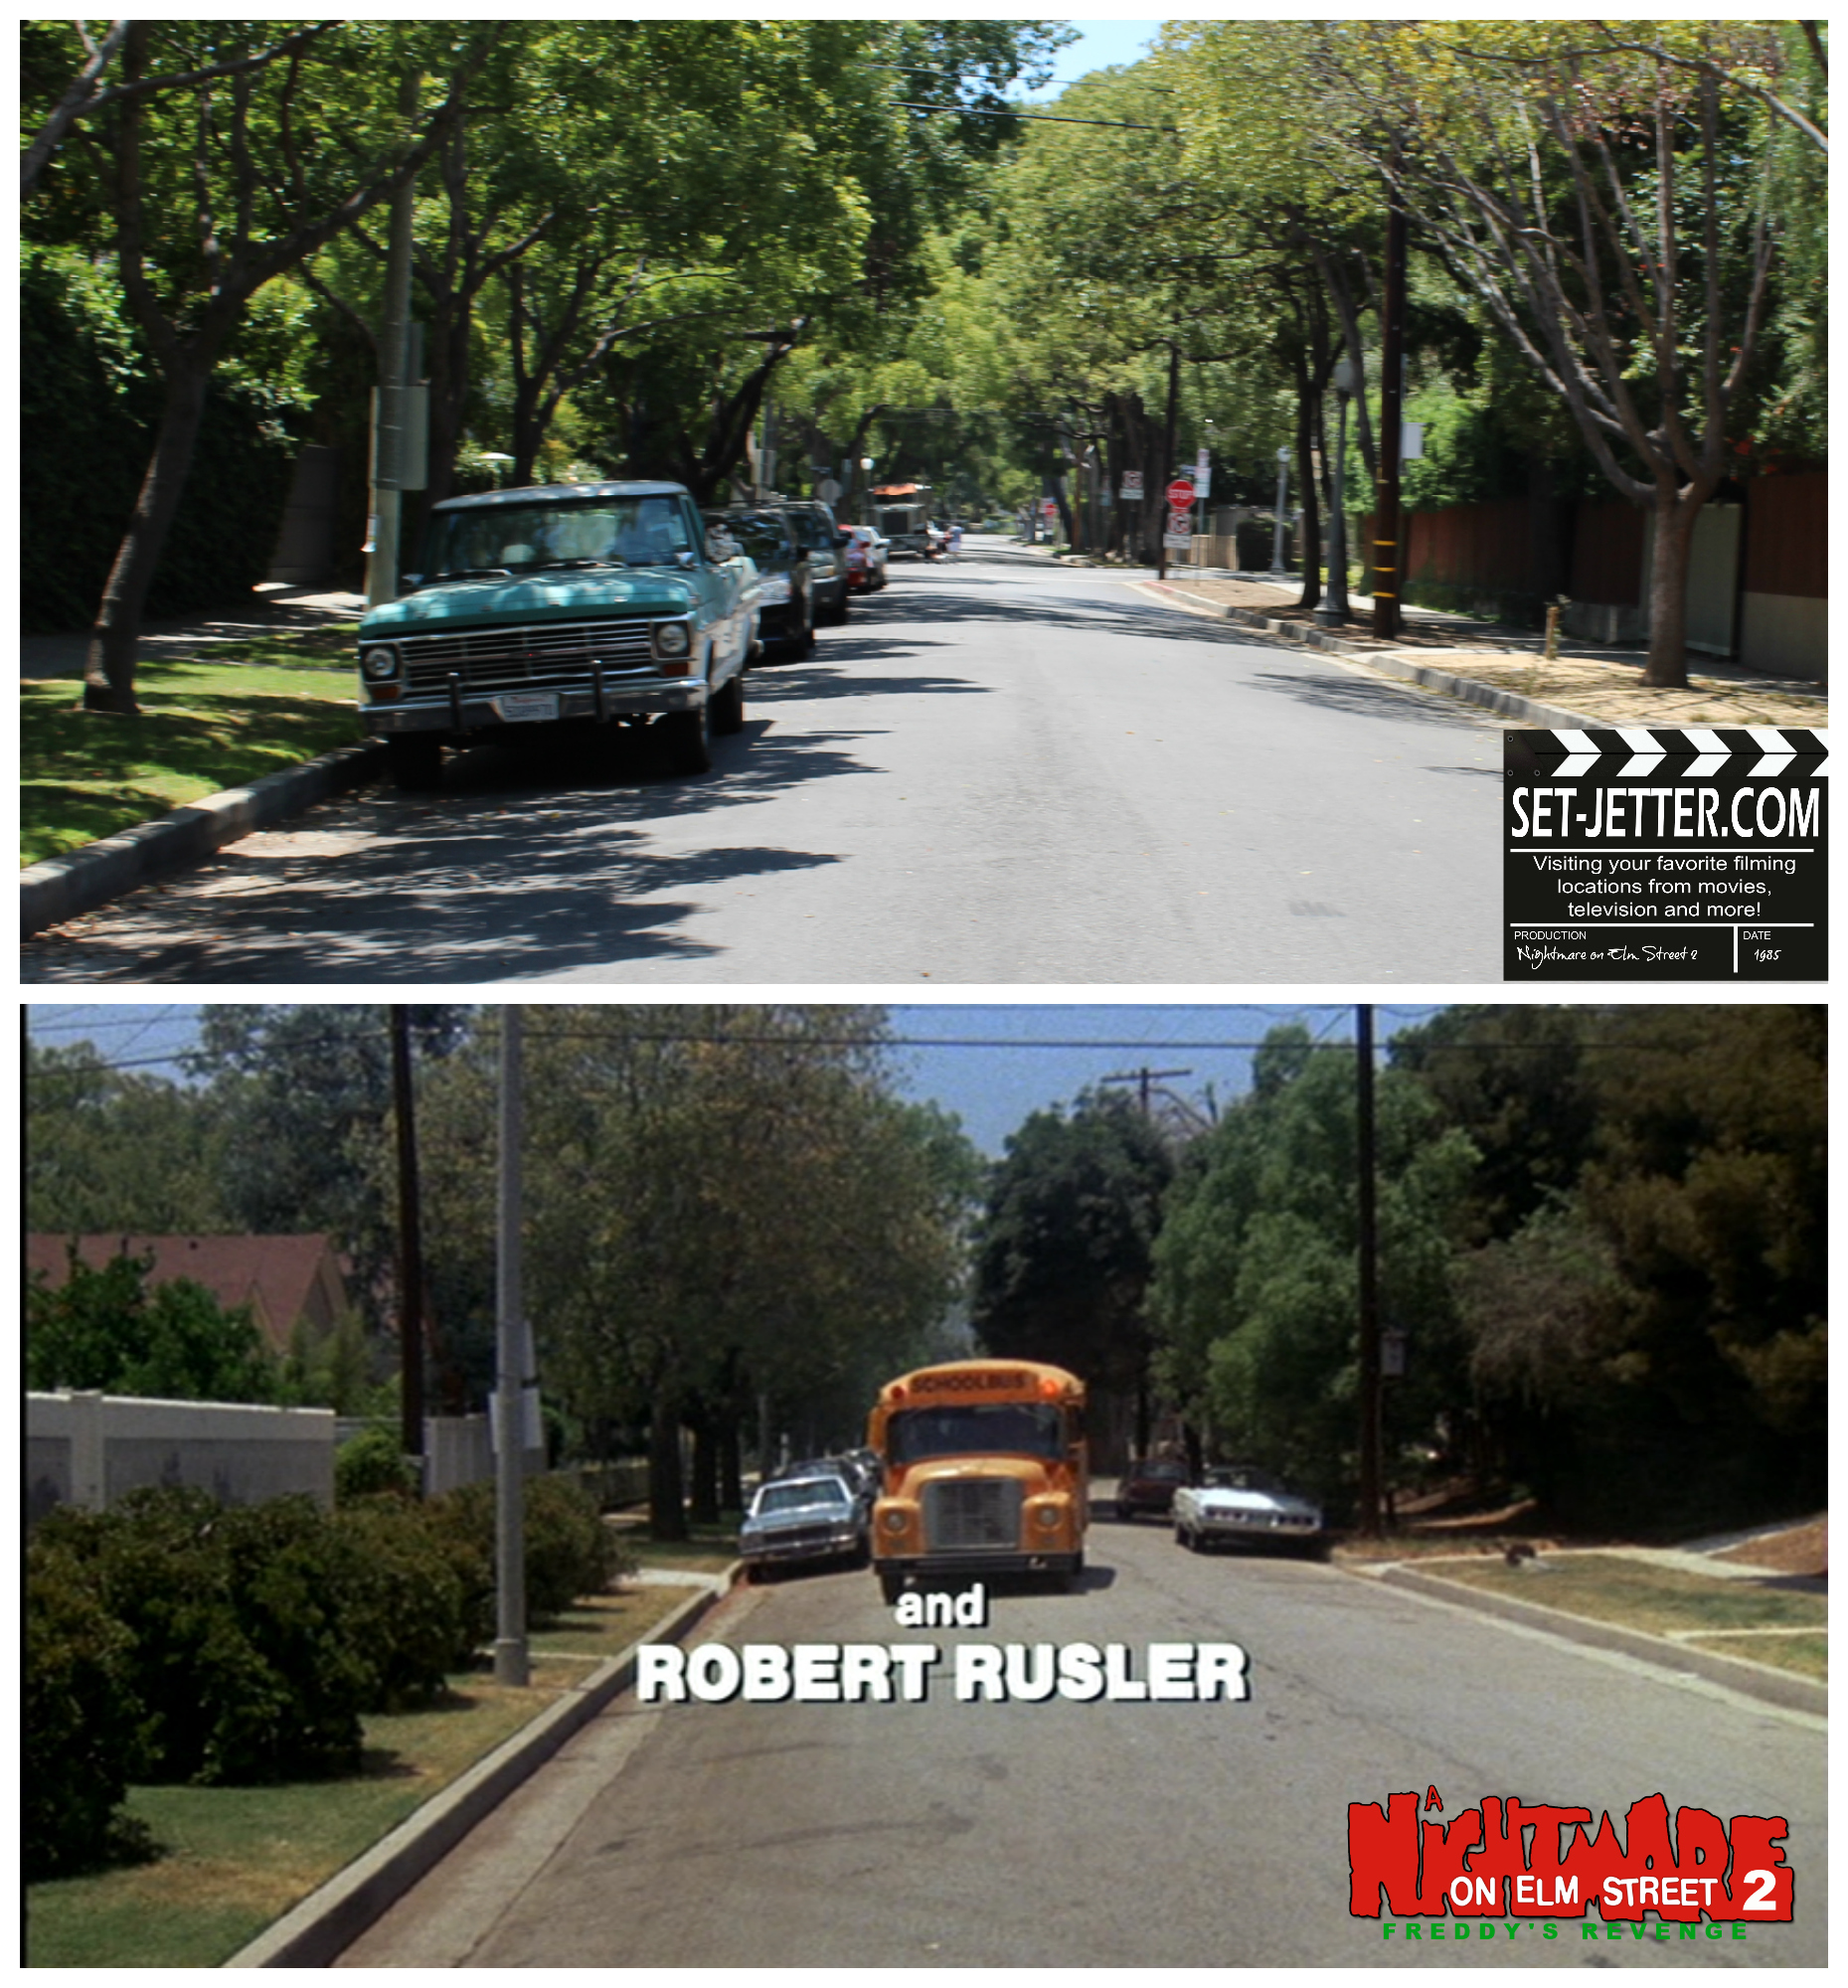 Nightmare on Elm Street Part 2 comparison 30.jpg